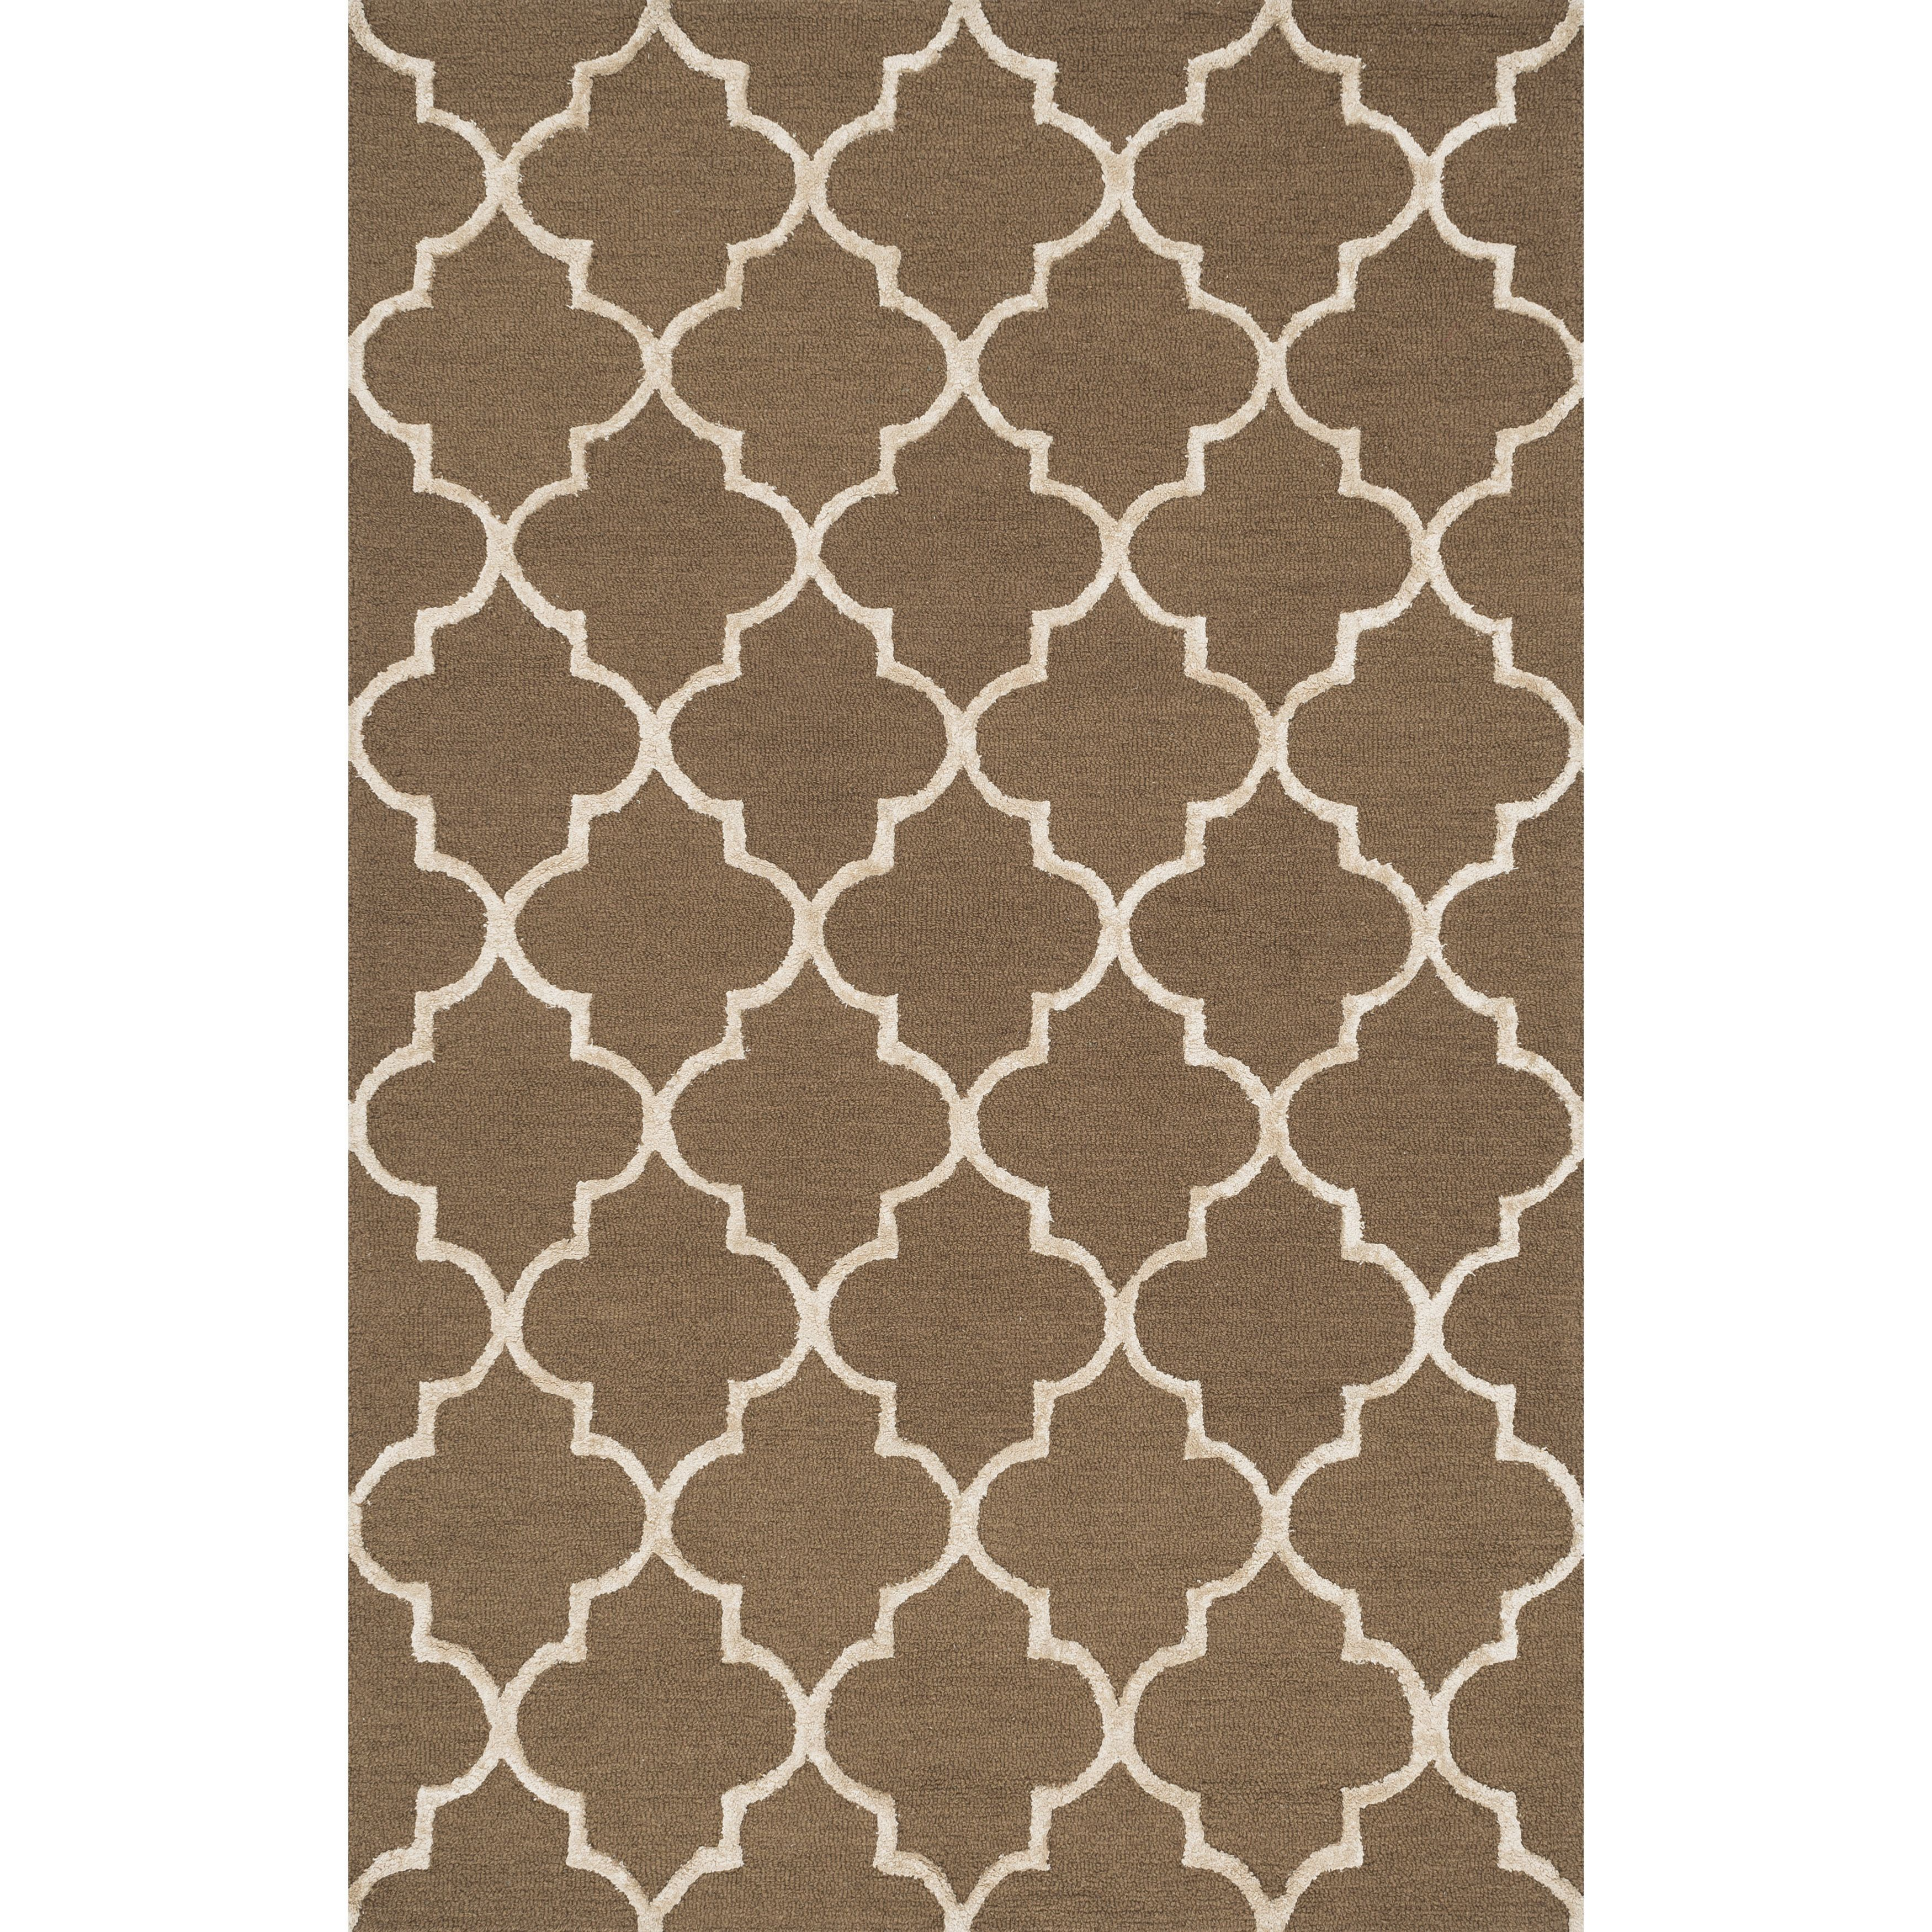 Hand Hooked Carolyn Moroccan Trellis Rug 3 6 X 5 Ping Great Deals On Alexander Home 3x5 4x6 Rugs